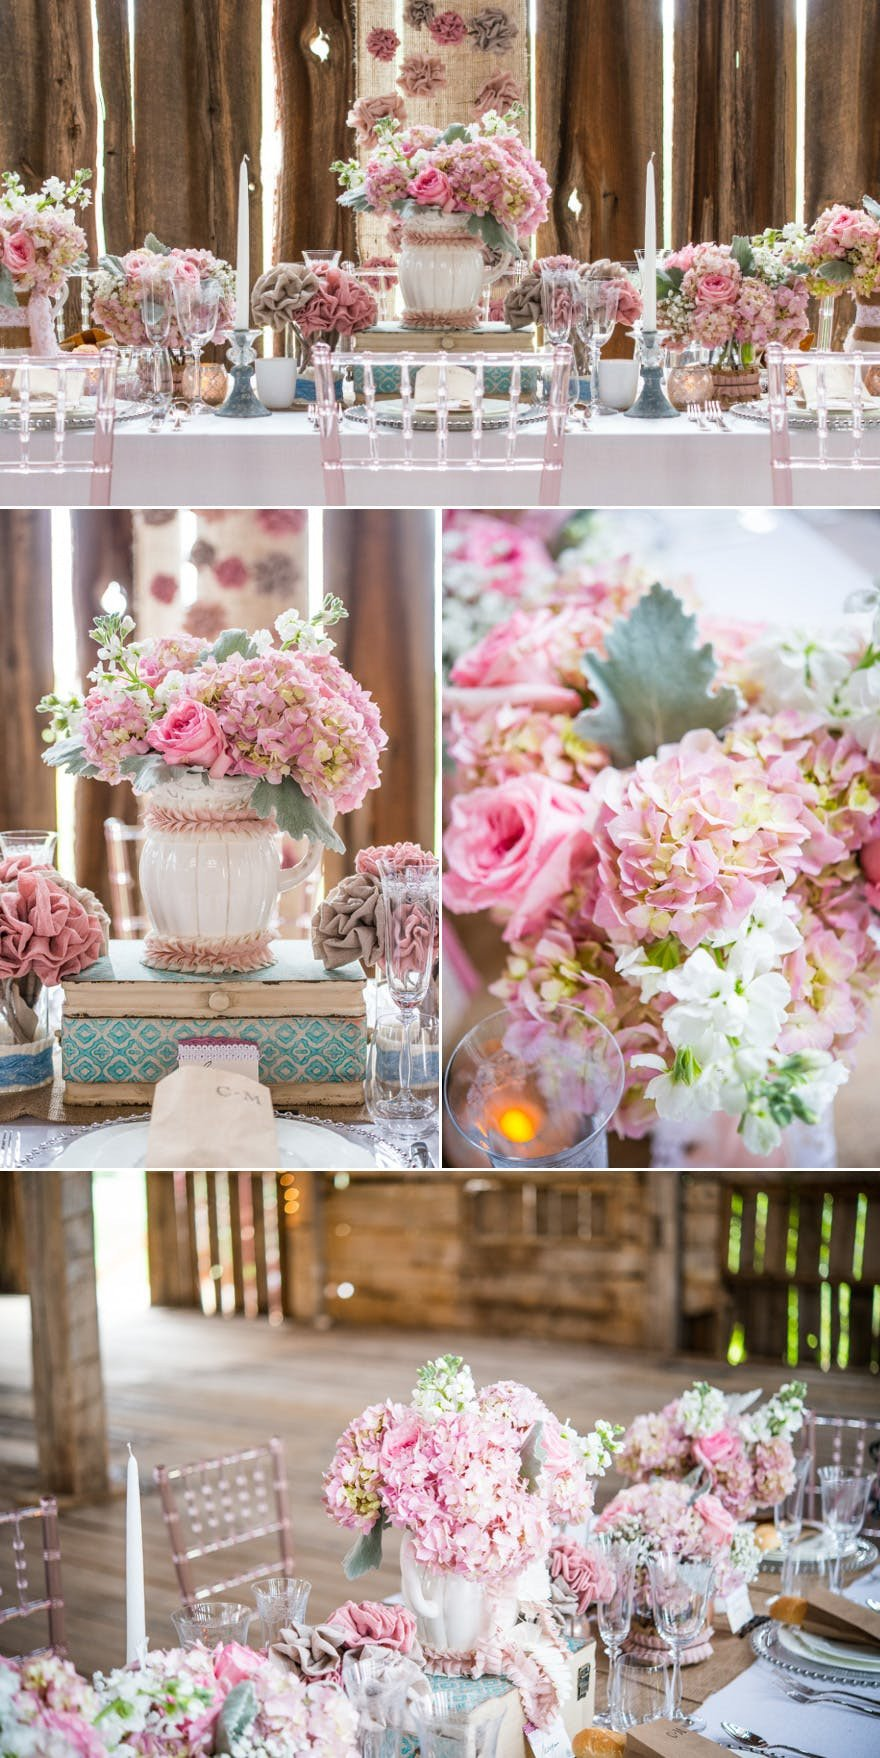 Pink and White Wedding Decor Luxury 50 Stunning Diy Wedding Centrepieces Ideas and Inspiration Confetti